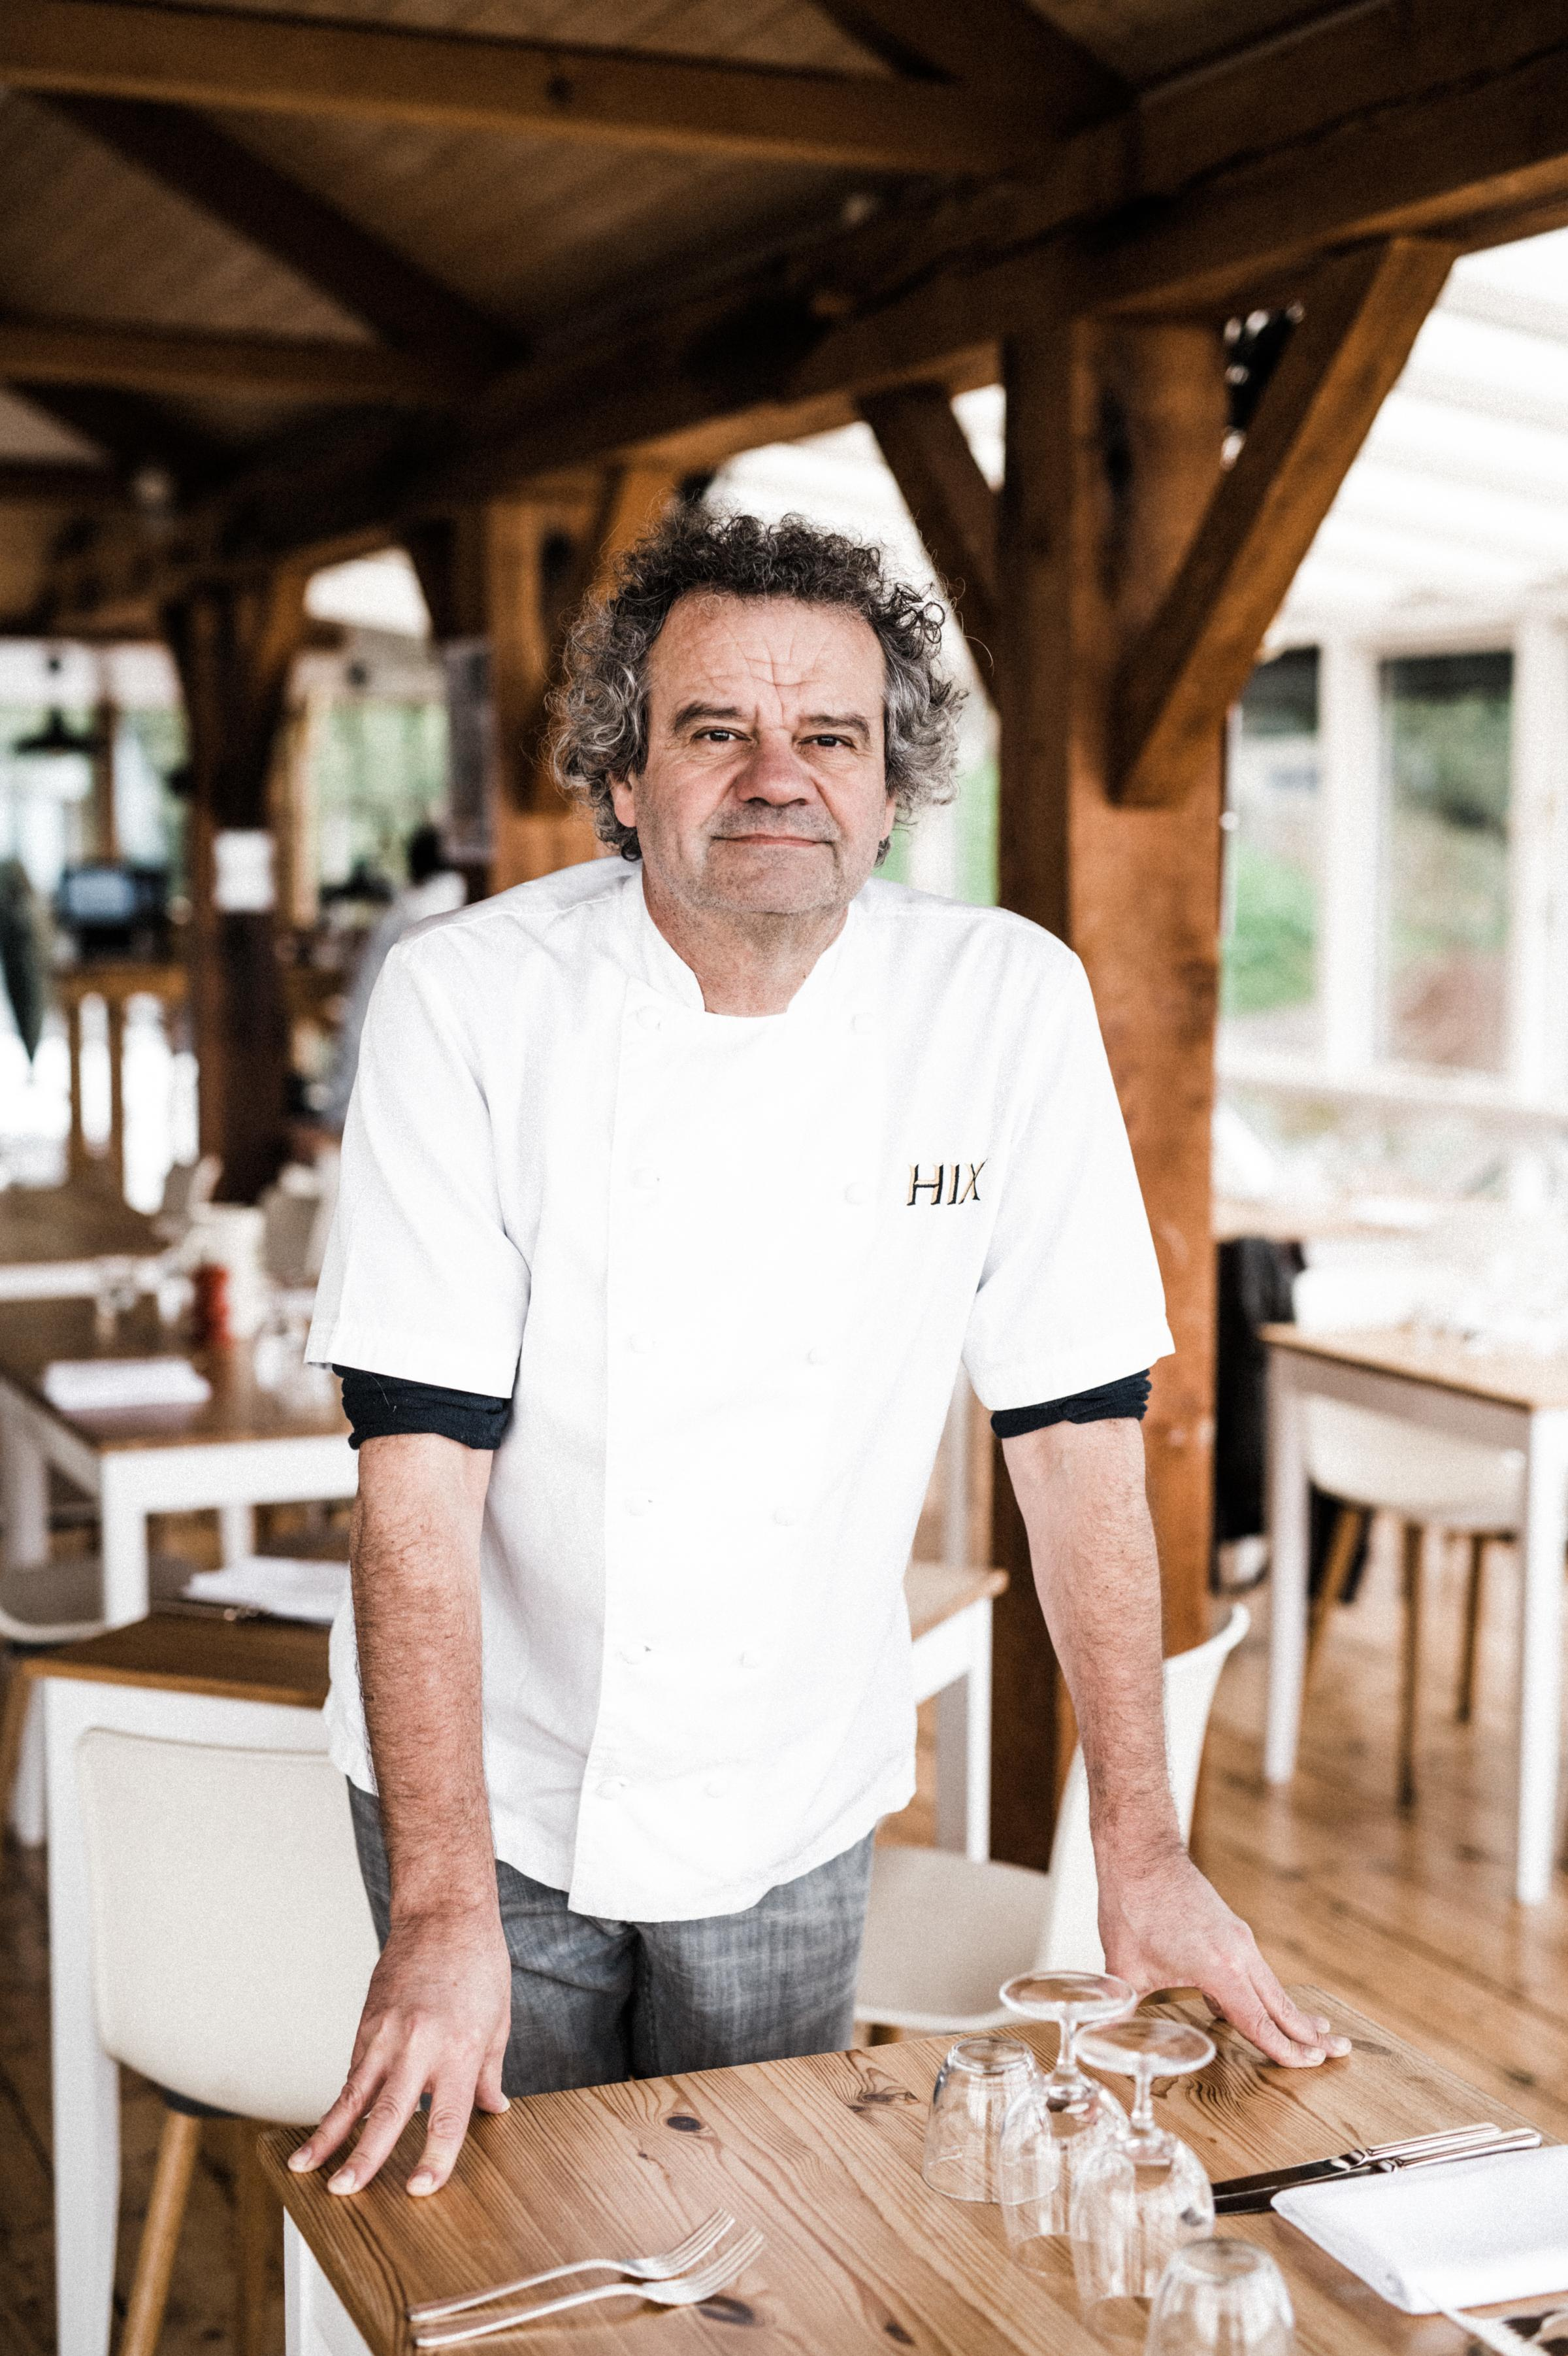 Chef Mark Hix explains why Food Rocks is more than just a food festival